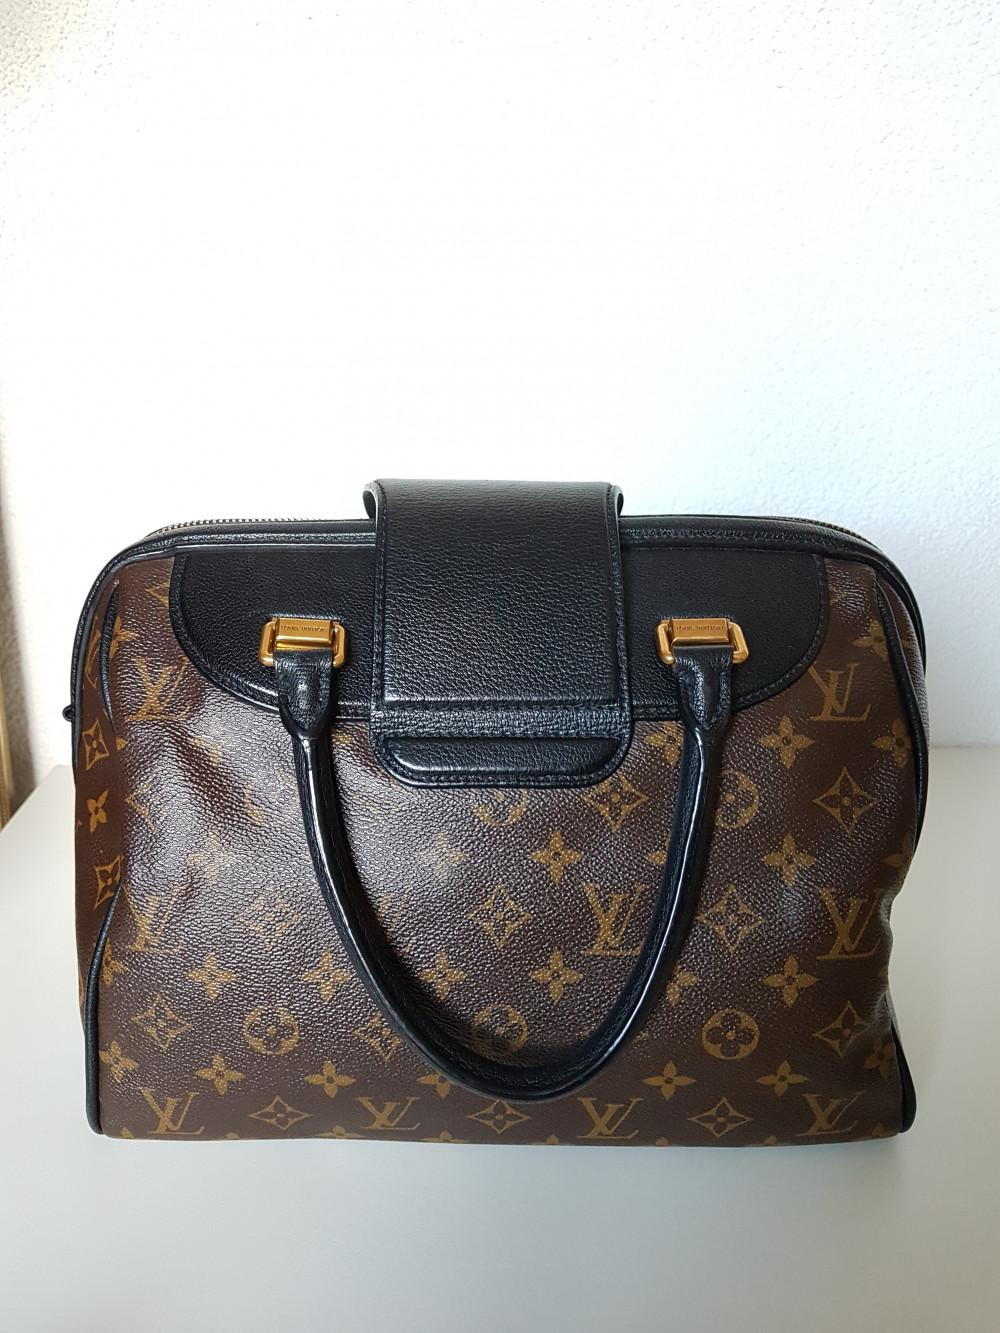 louis-vuitton-96161-2-352730